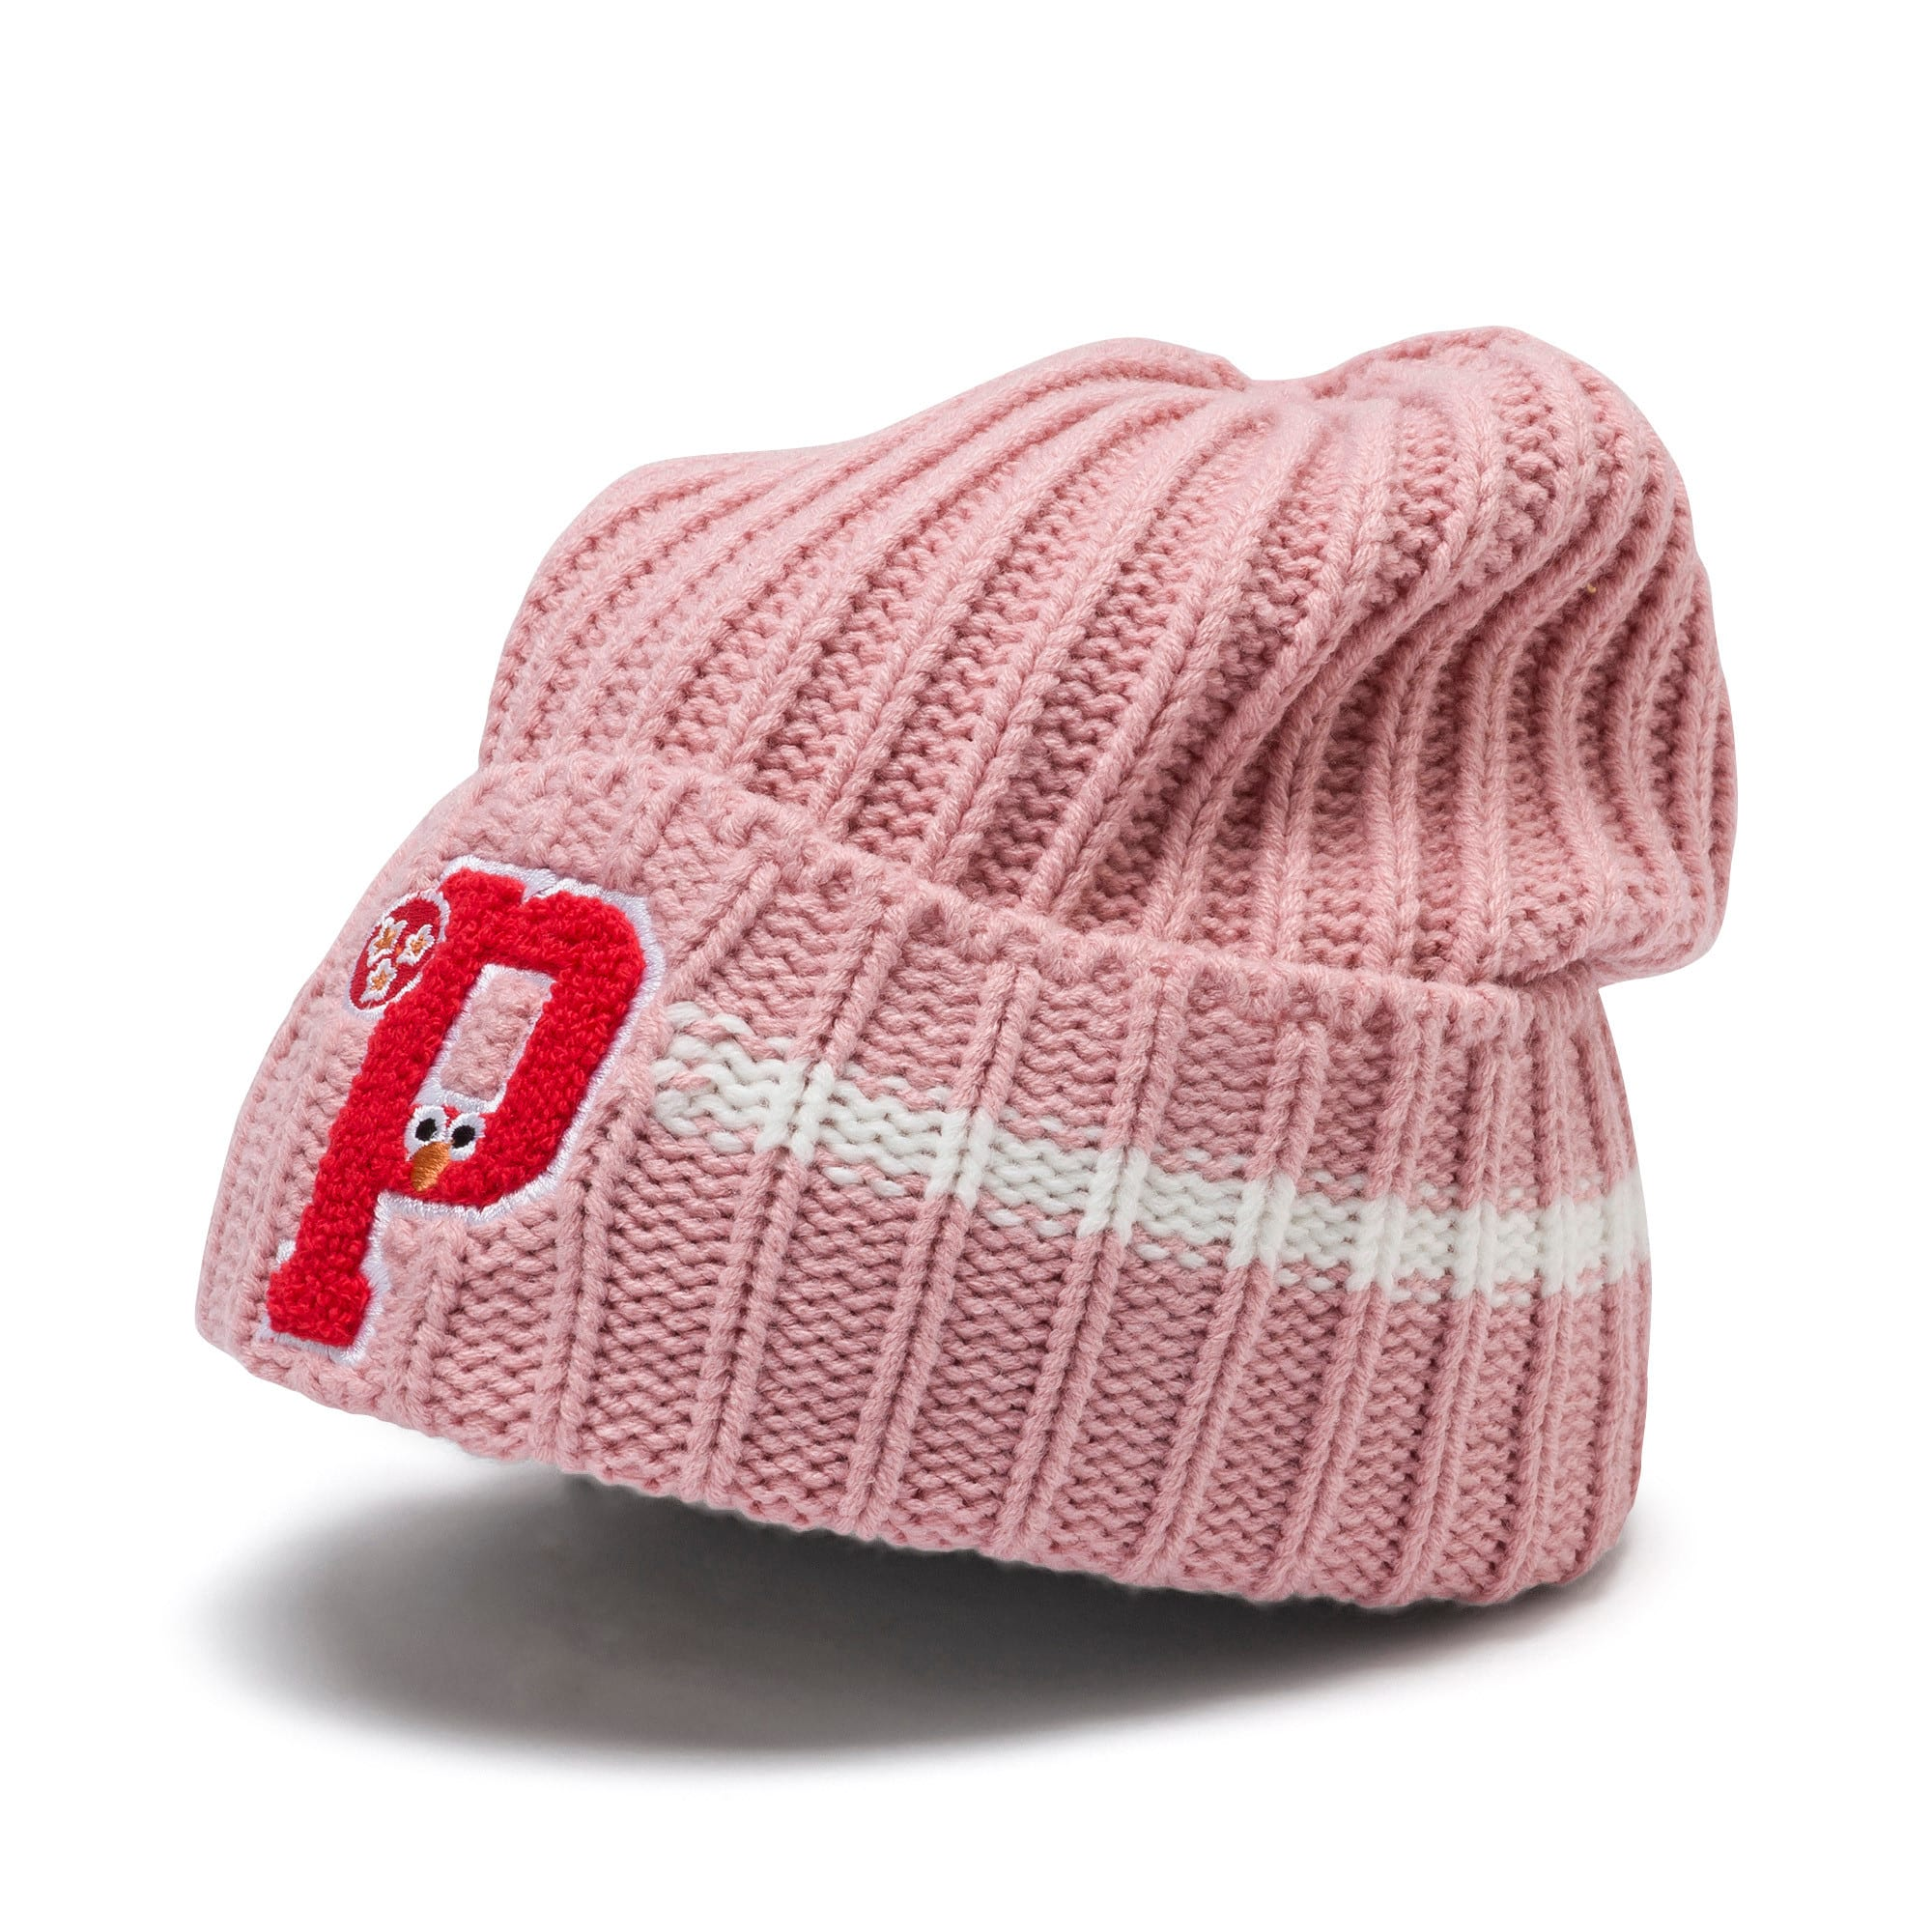 Thumbnail 1 of PUMA x SESAME STREET Kids' Beanie, Bridal Rose, medium